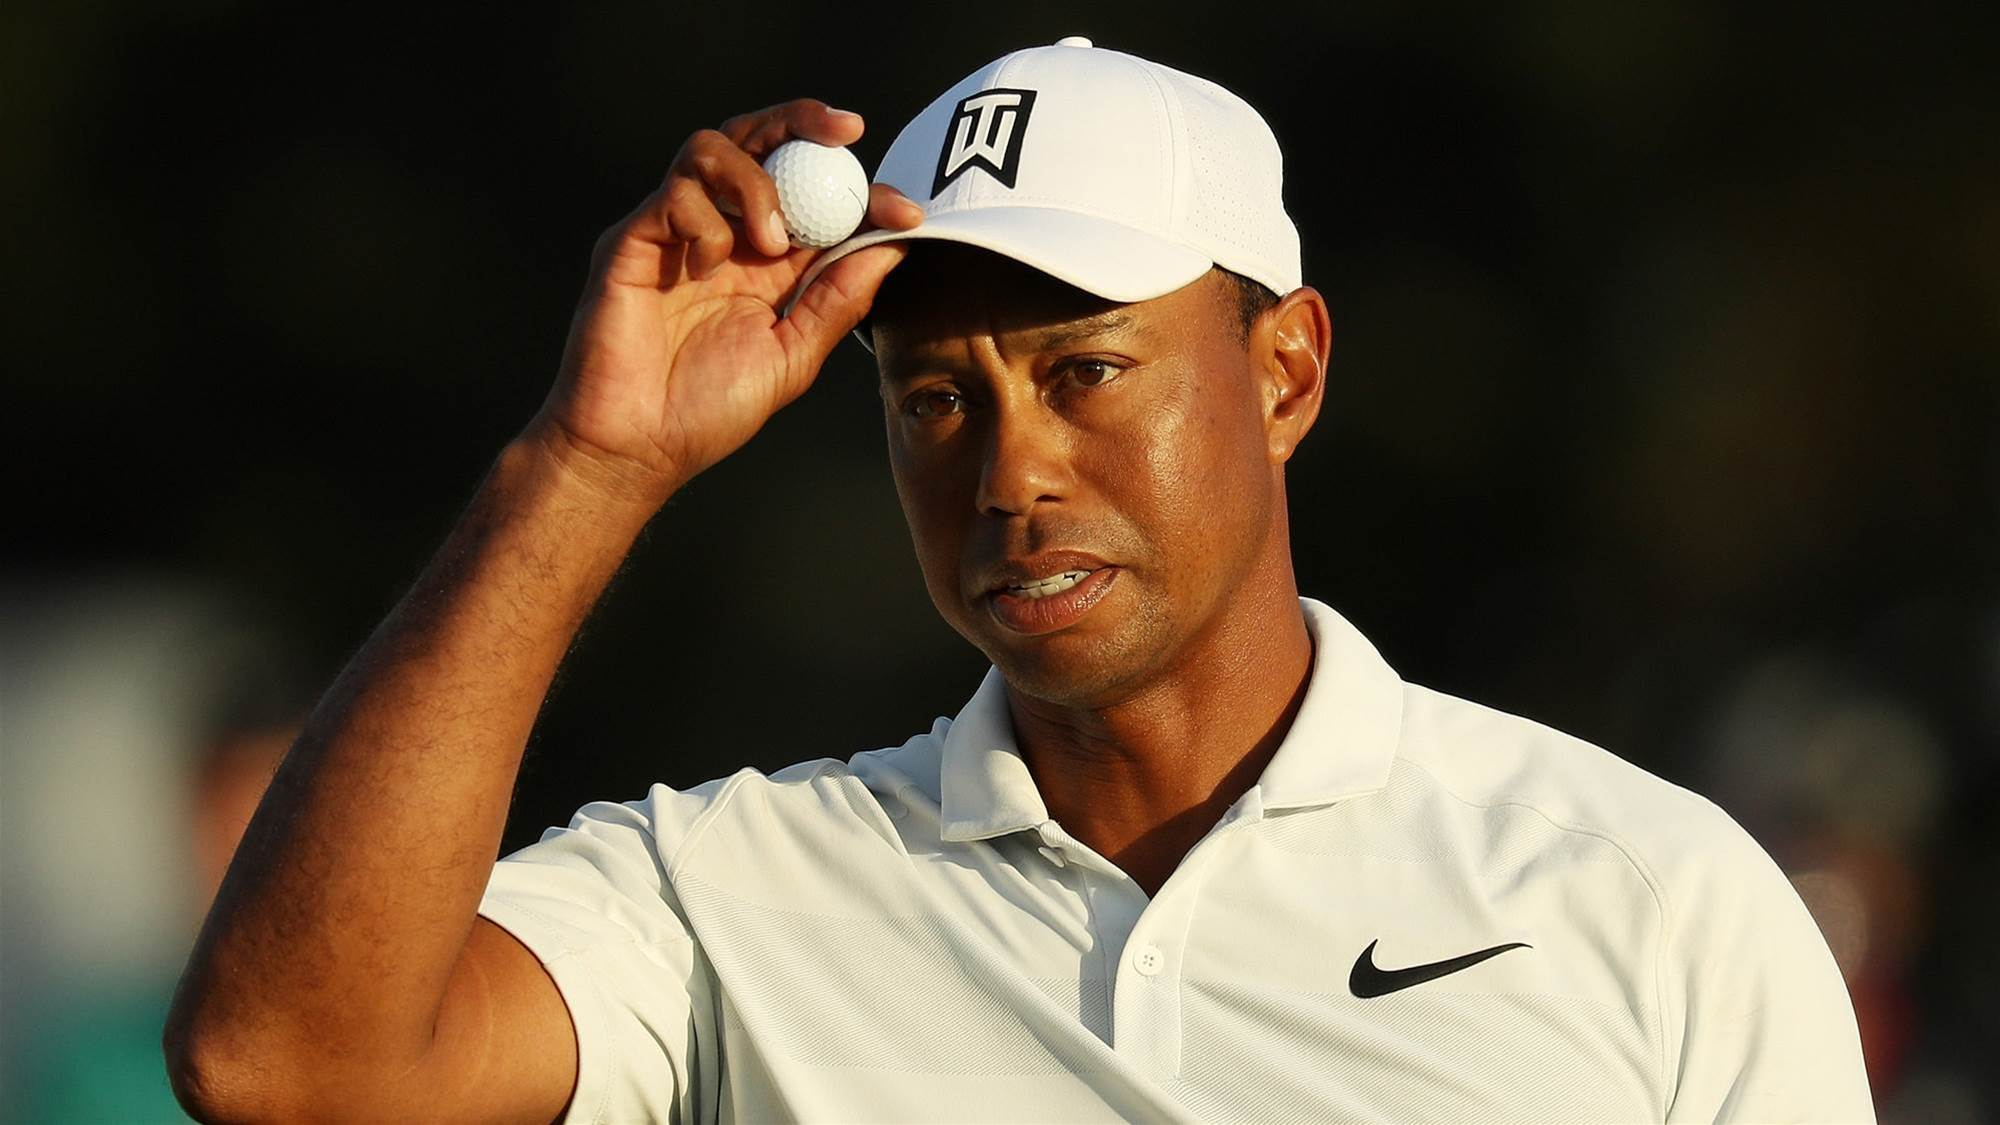 Woods files entry to play US Open in June